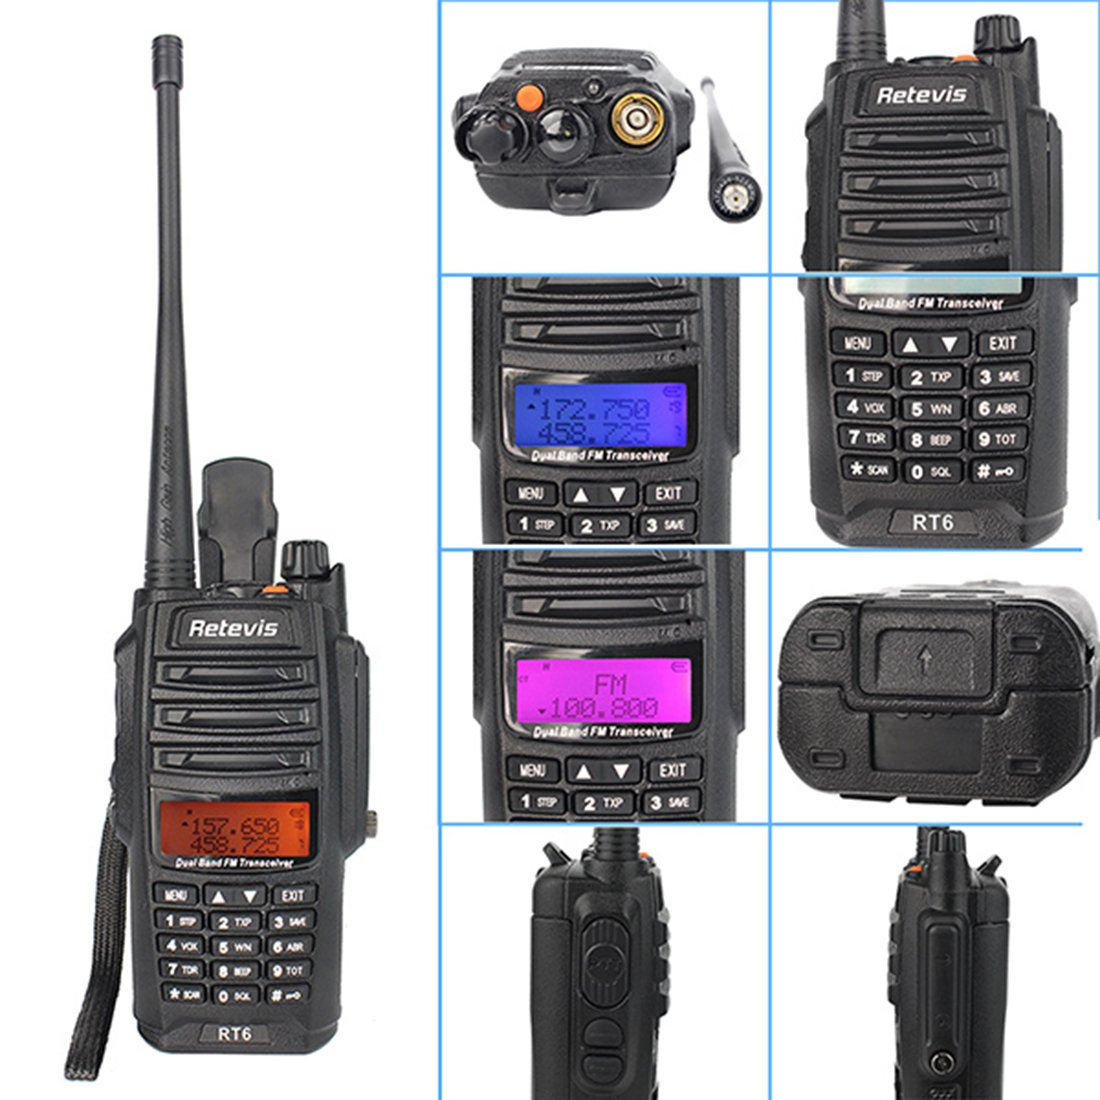 Retevis RT6 2 Way Radio IP67 Waterproof Dual Band VHF/UHF 136-174Mhz/400-520Mhz Walkie Talkie with Earpiece (5 Pack) and Programming Cable (1 Pack) by Retevis (Image #3)